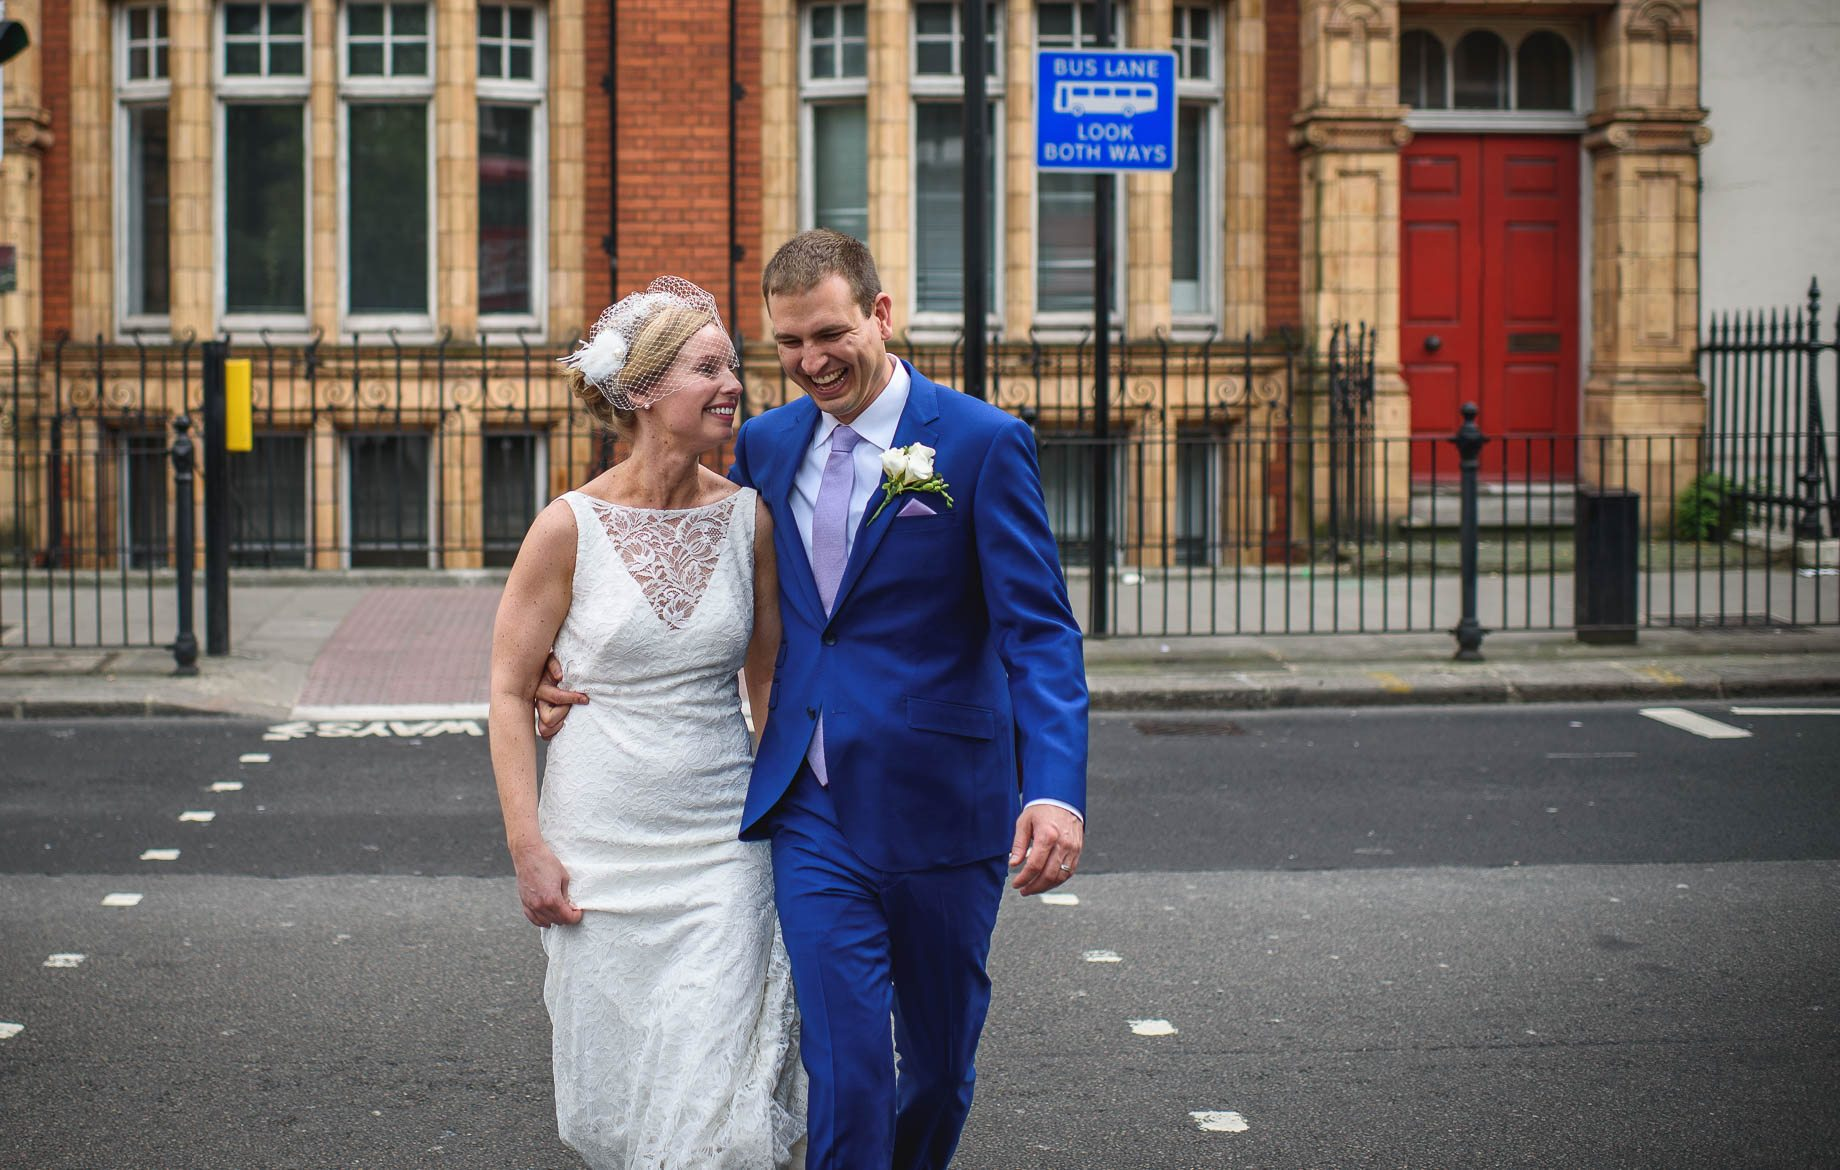 Bllomsbury House wedding photography in London - Katie and Taylor (73 of 156)